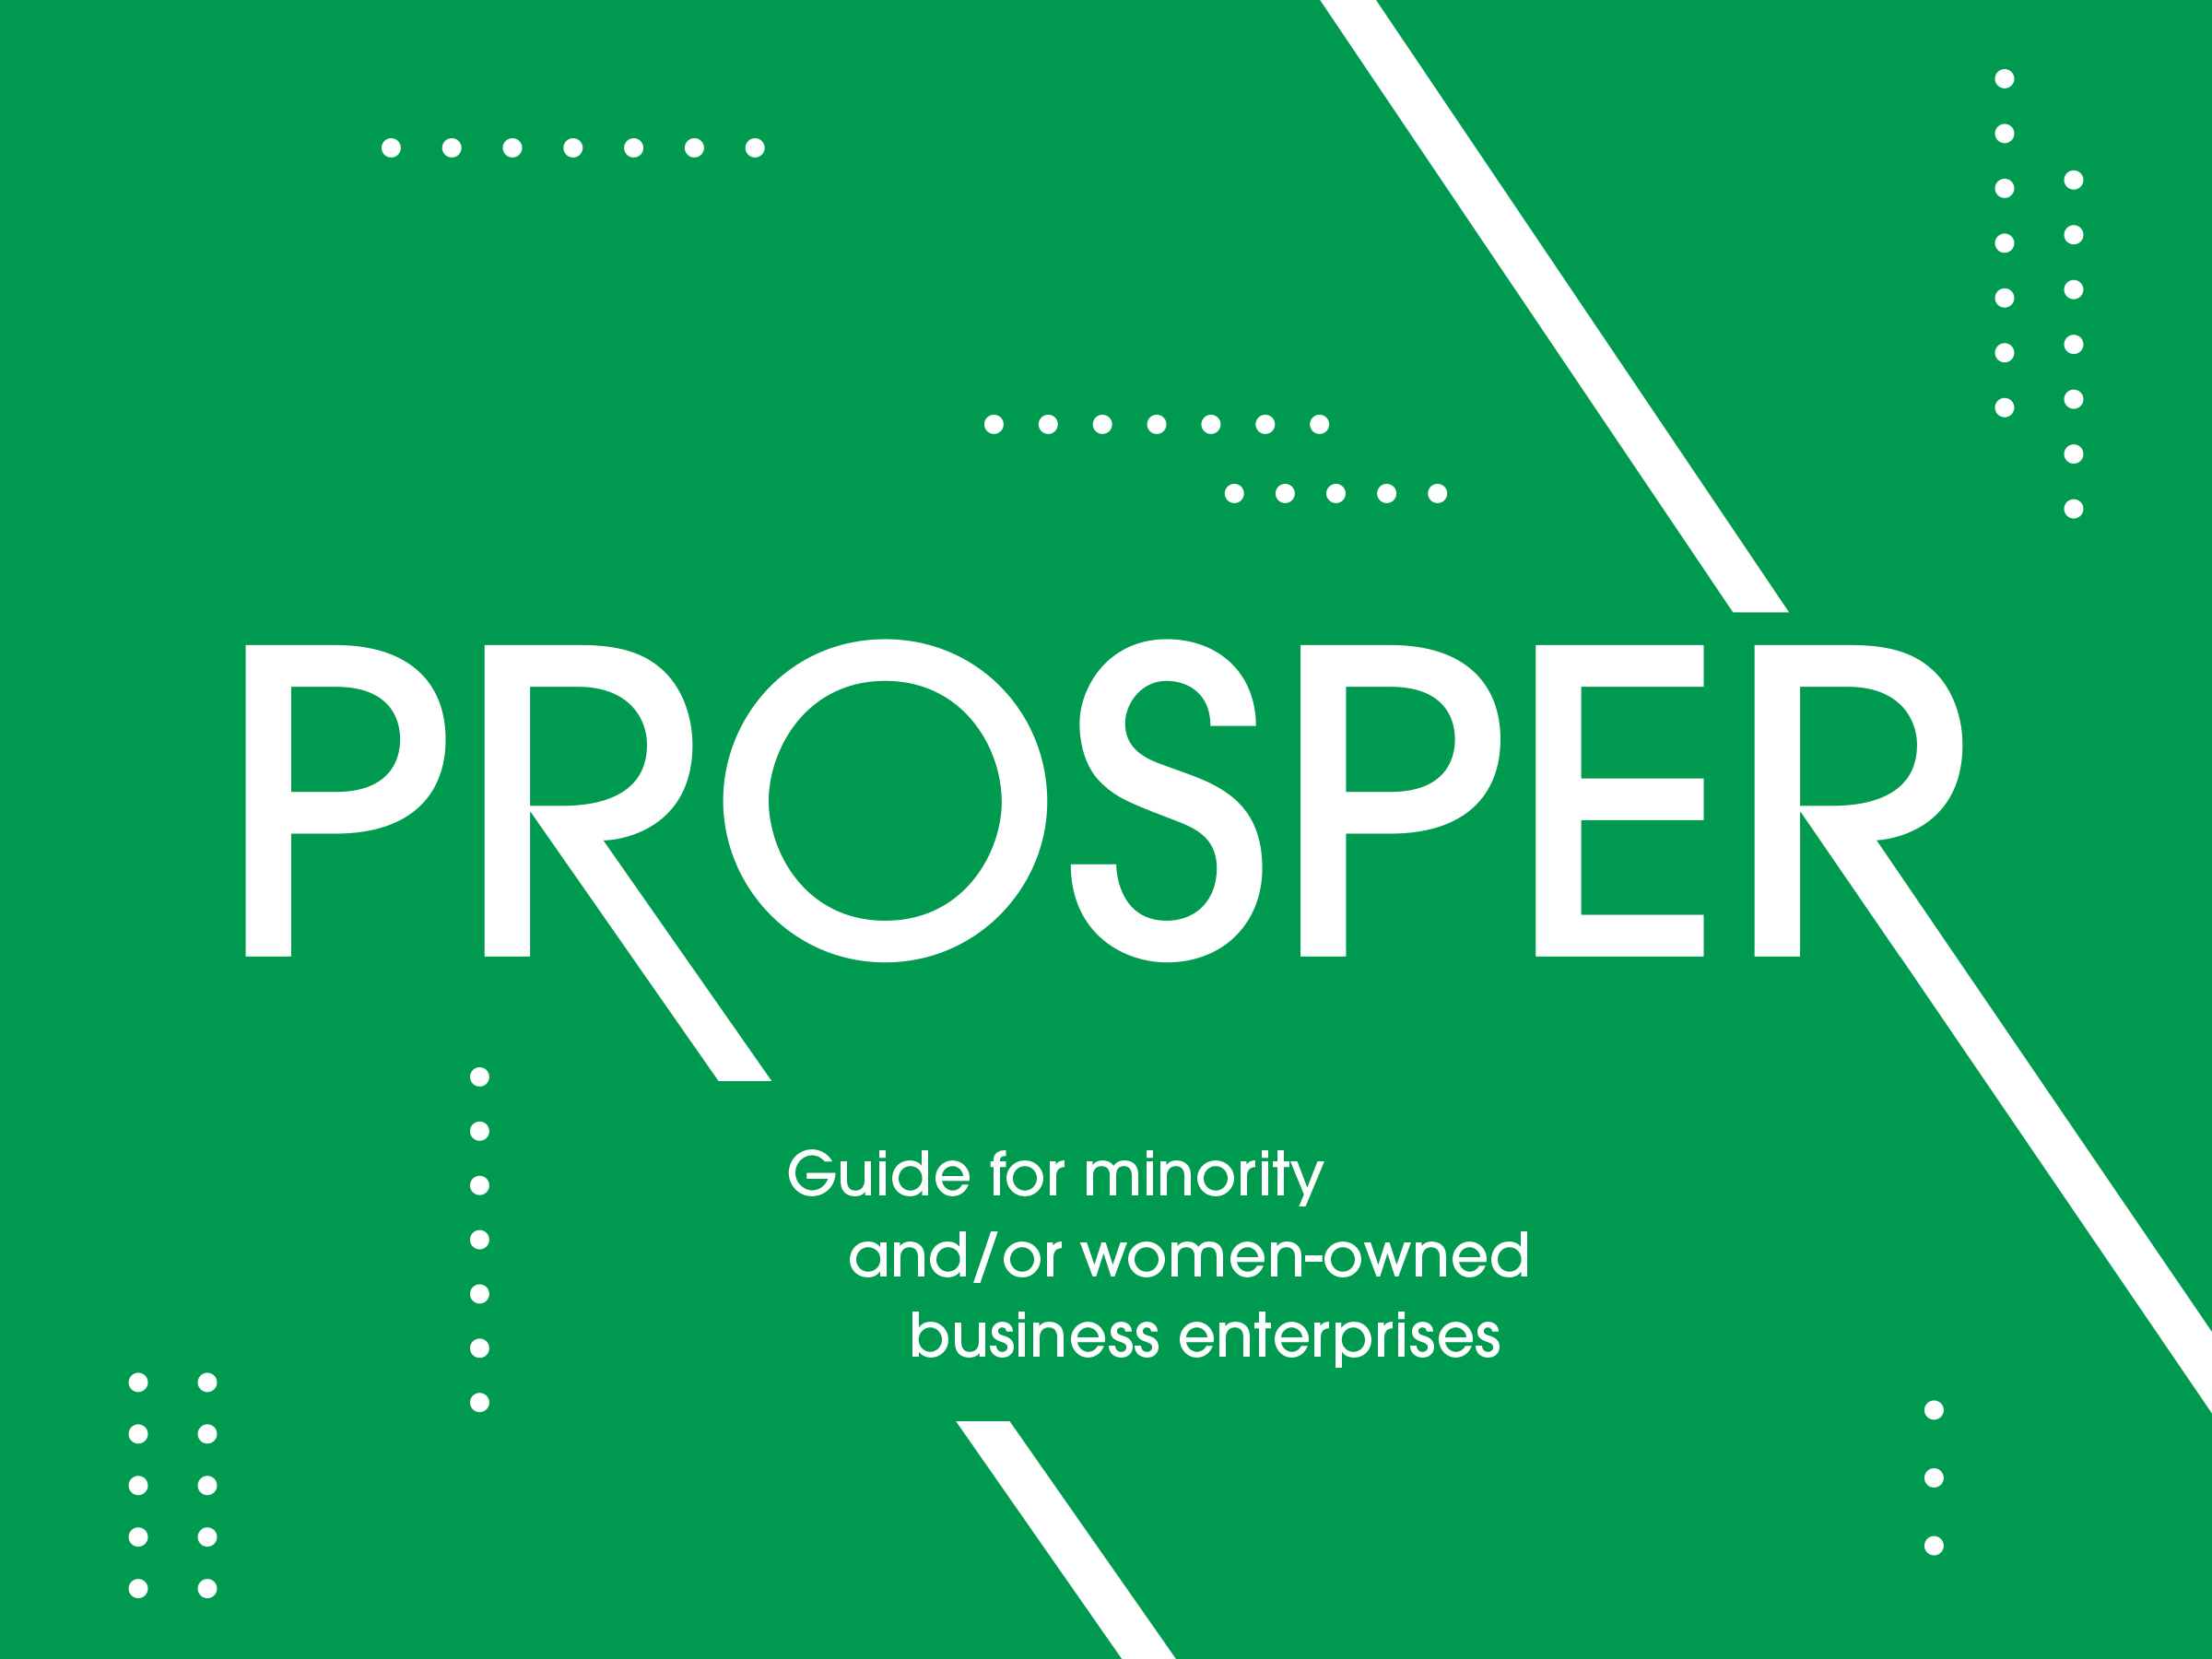 Prosper: A Guide for Minority and/or Women-owned Business Enterprises